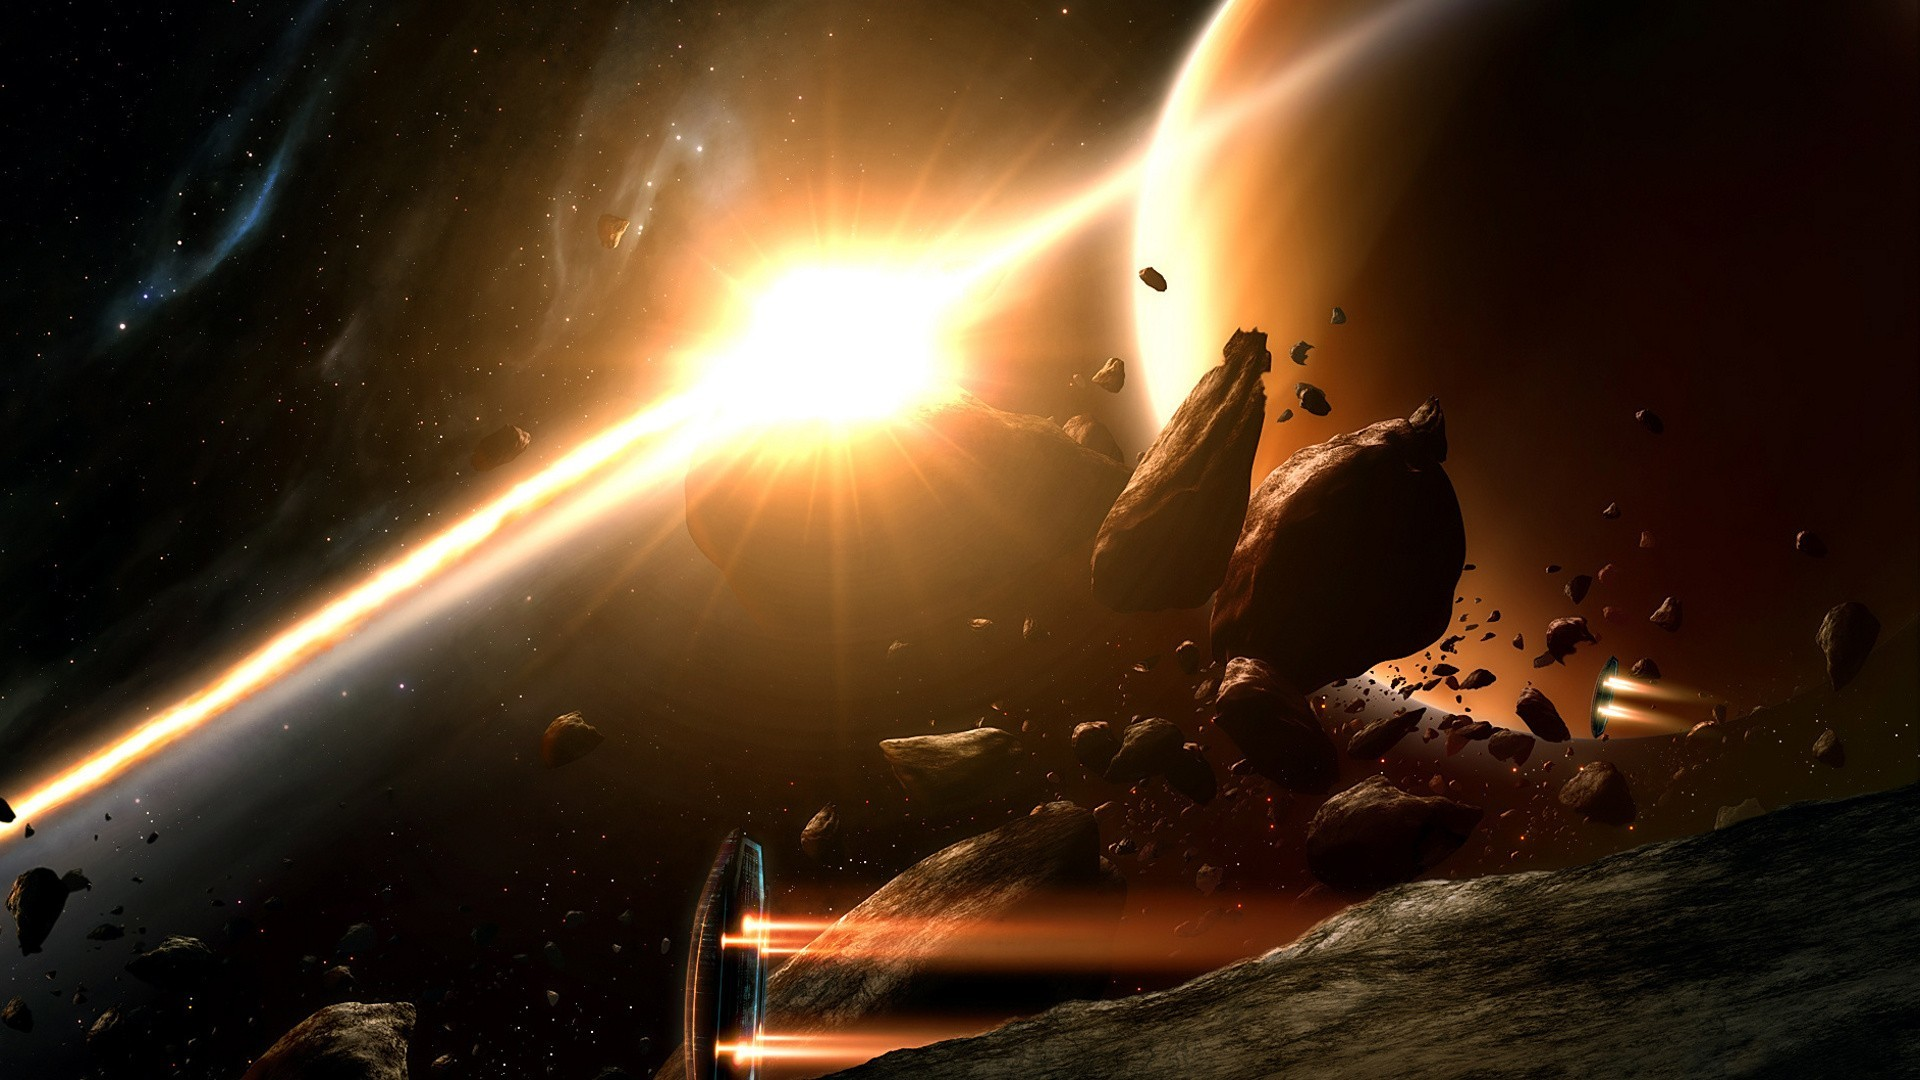 Space Asteroids Art